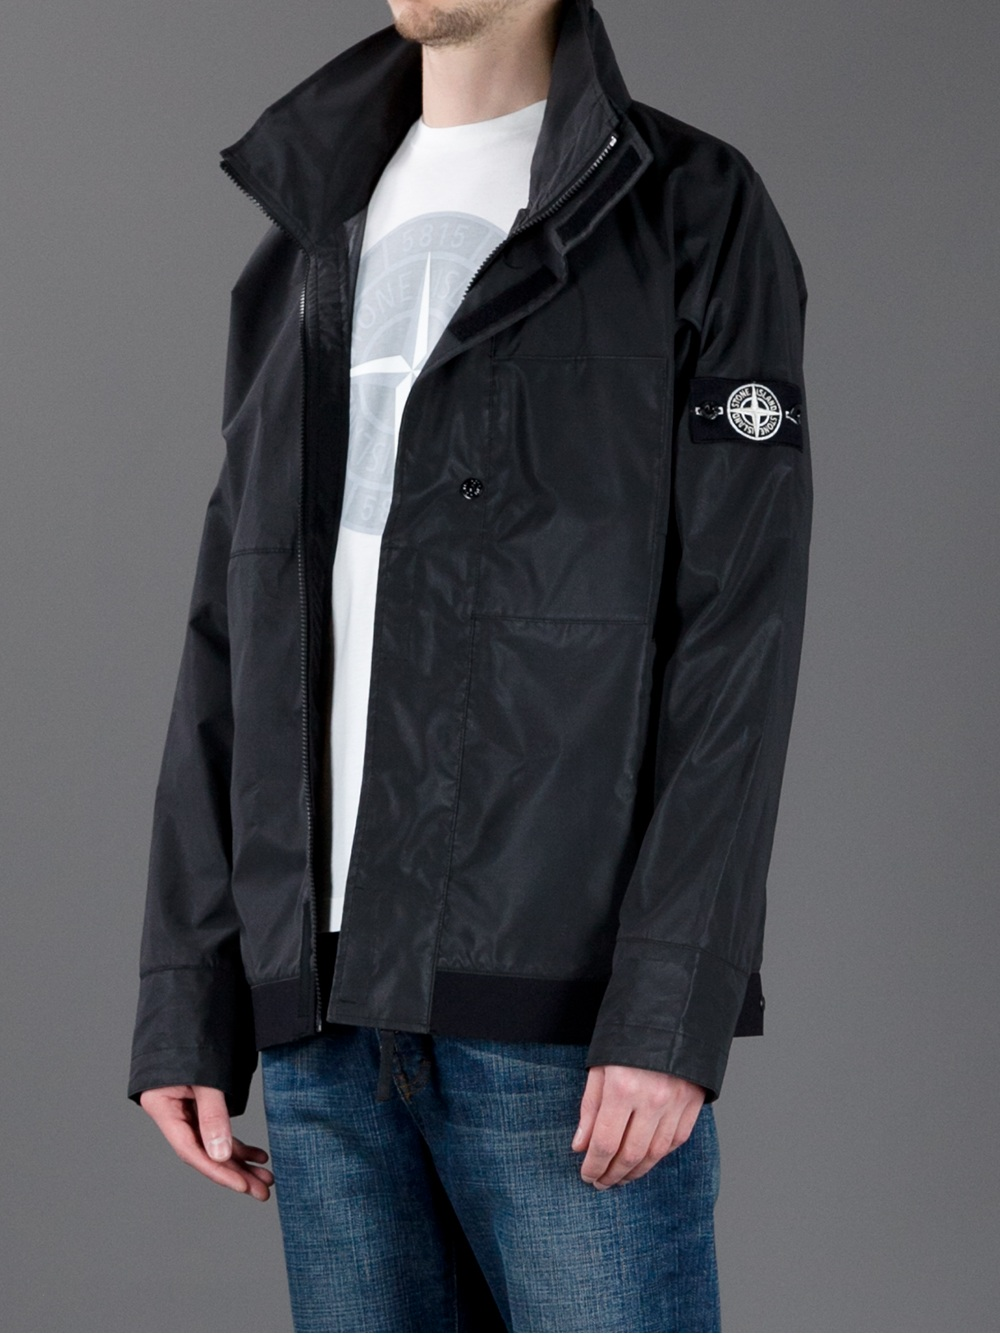 stone island reflex mat wind breaker jacket in black for men lyst. Black Bedroom Furniture Sets. Home Design Ideas